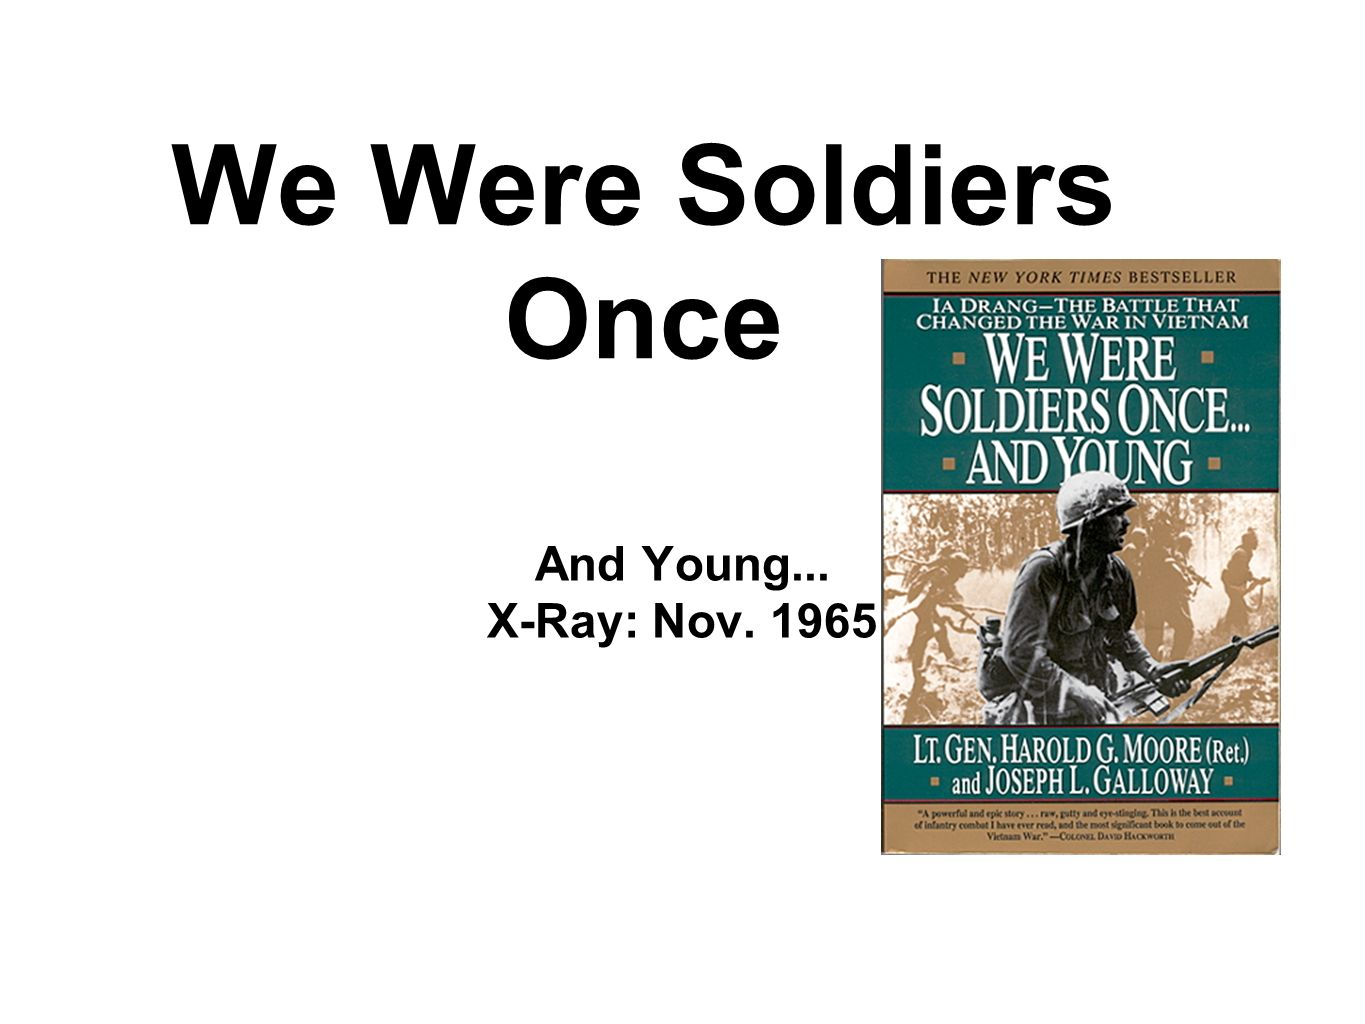 We Were Soldiers Once And Young... X-Ray: Nov. 1965